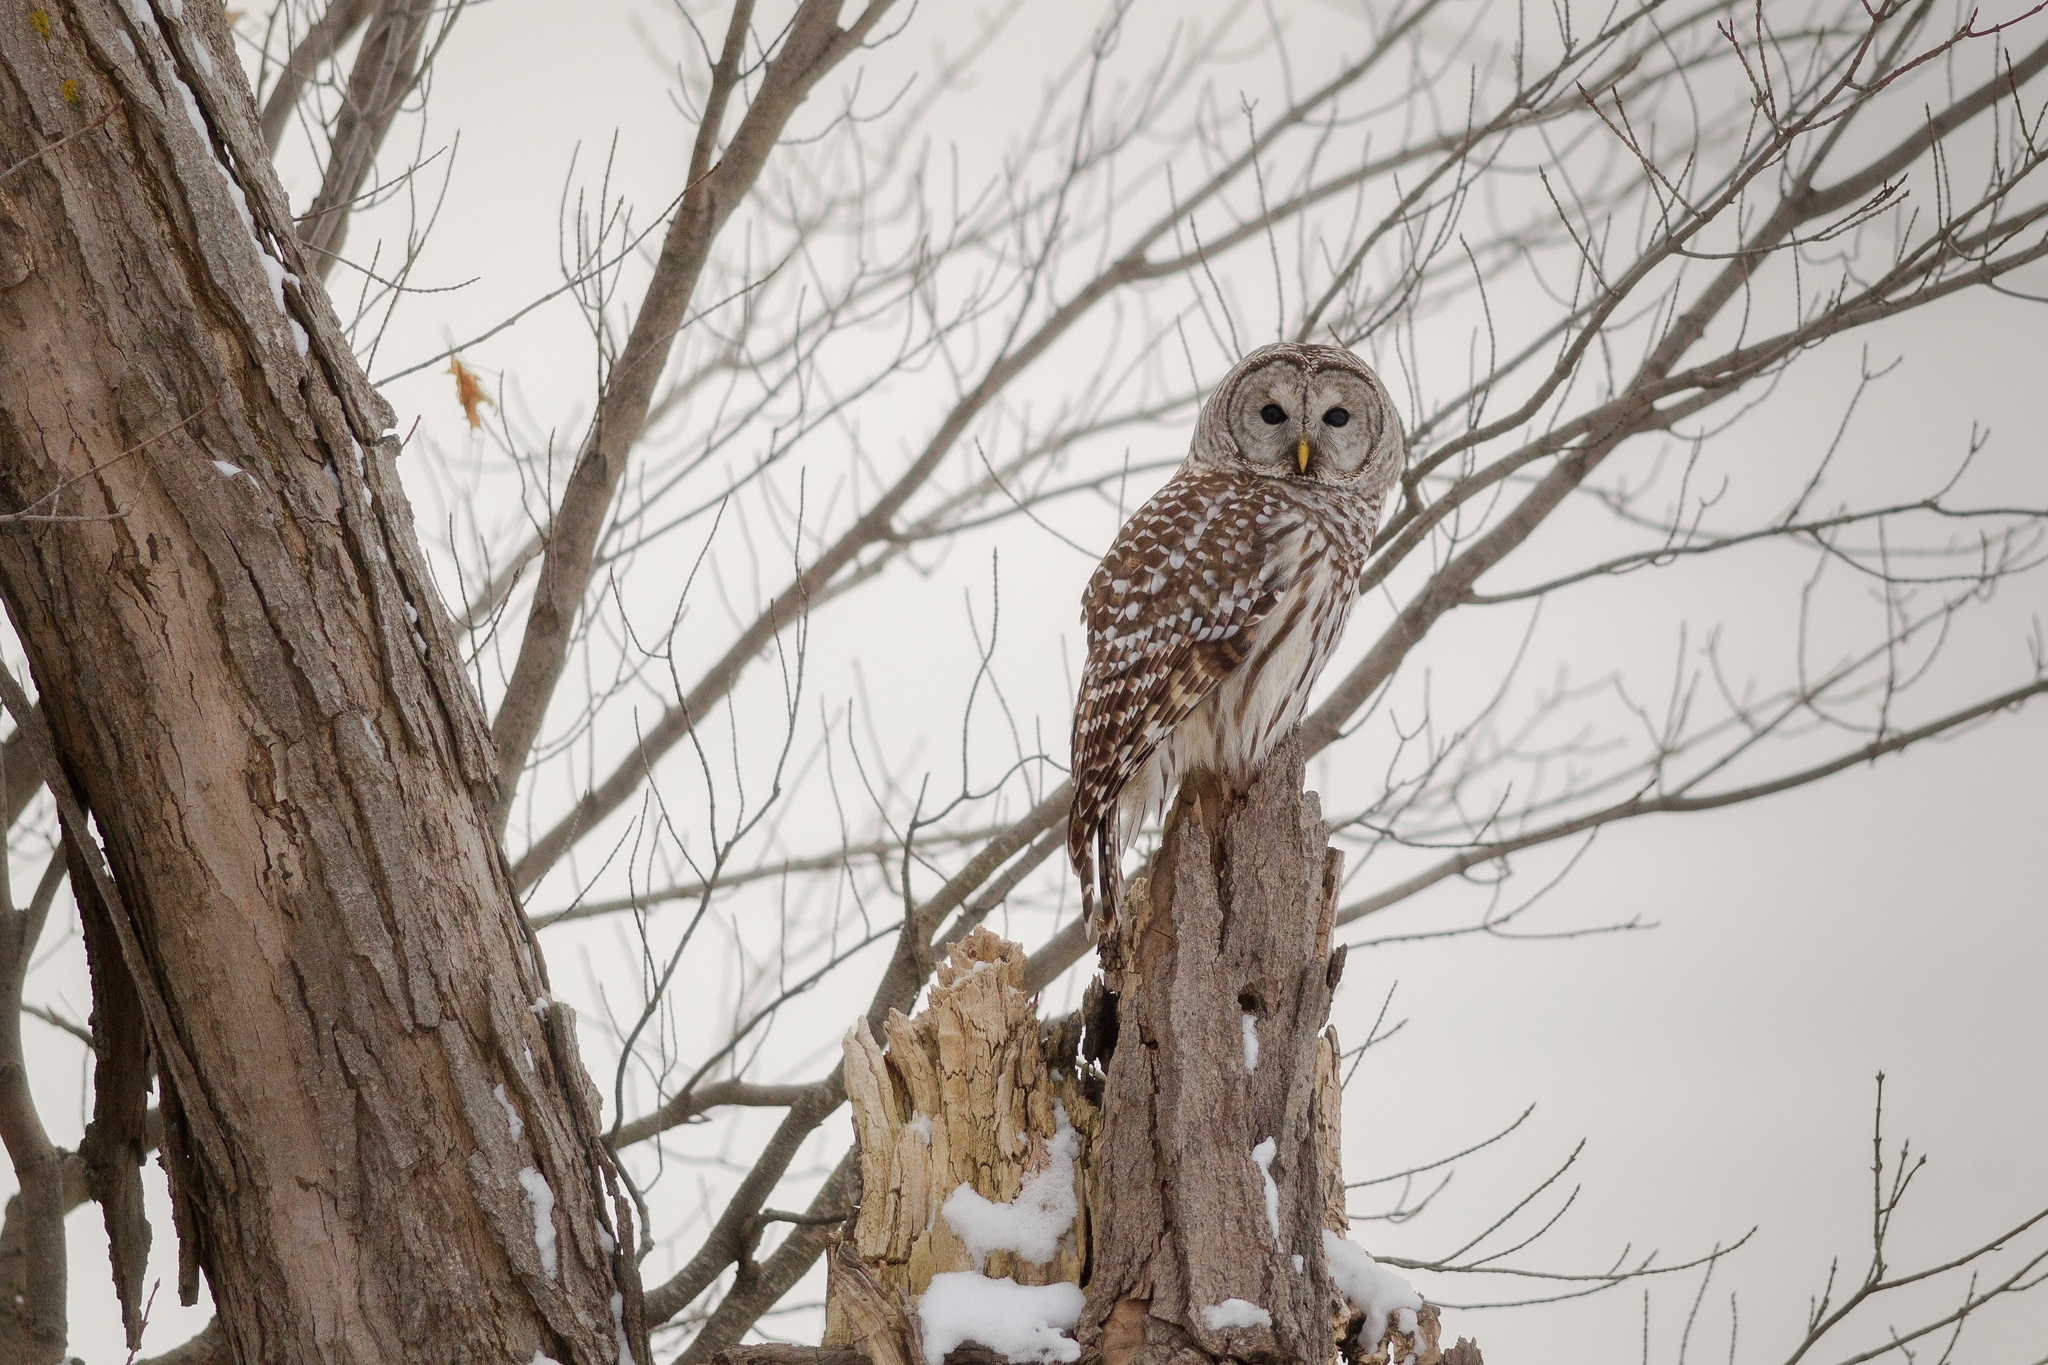 122991 download wallpaper Winter, Animals, Owl, Wood, Forest, Tree screensavers and pictures for free